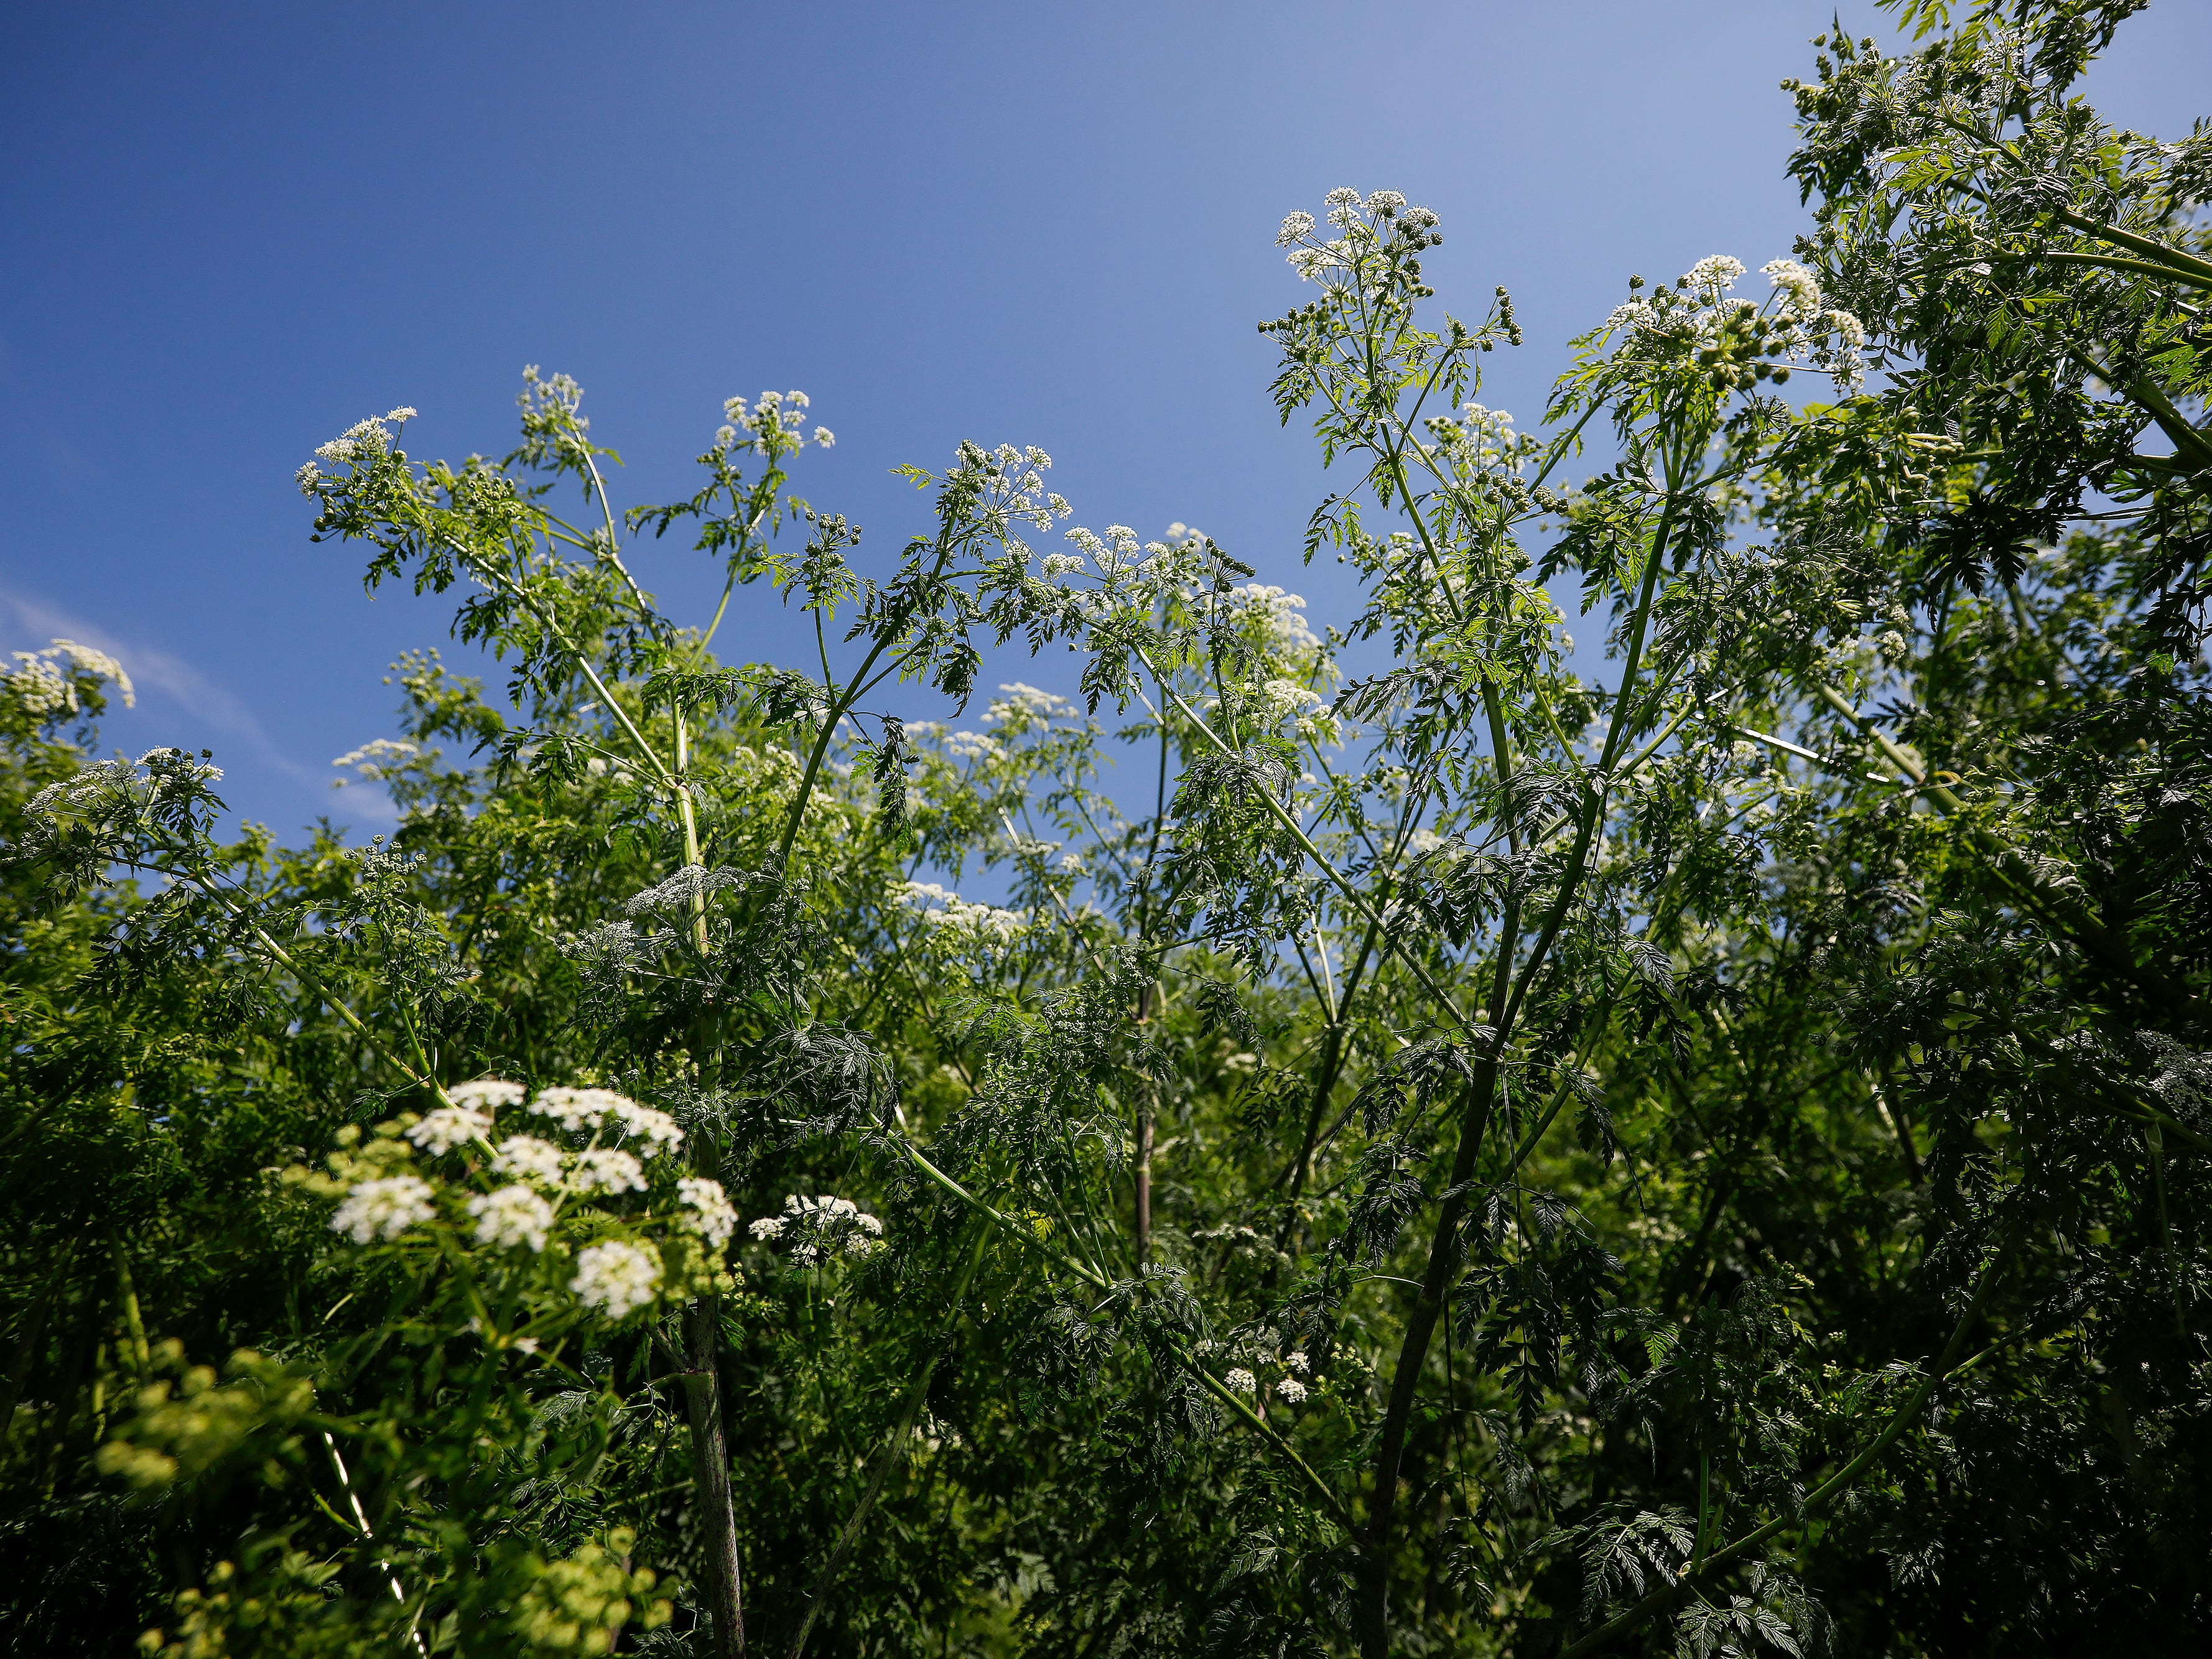 A large patch of poison hemlock is growing near the softball and soccer fields at the Killian Softball Complex.